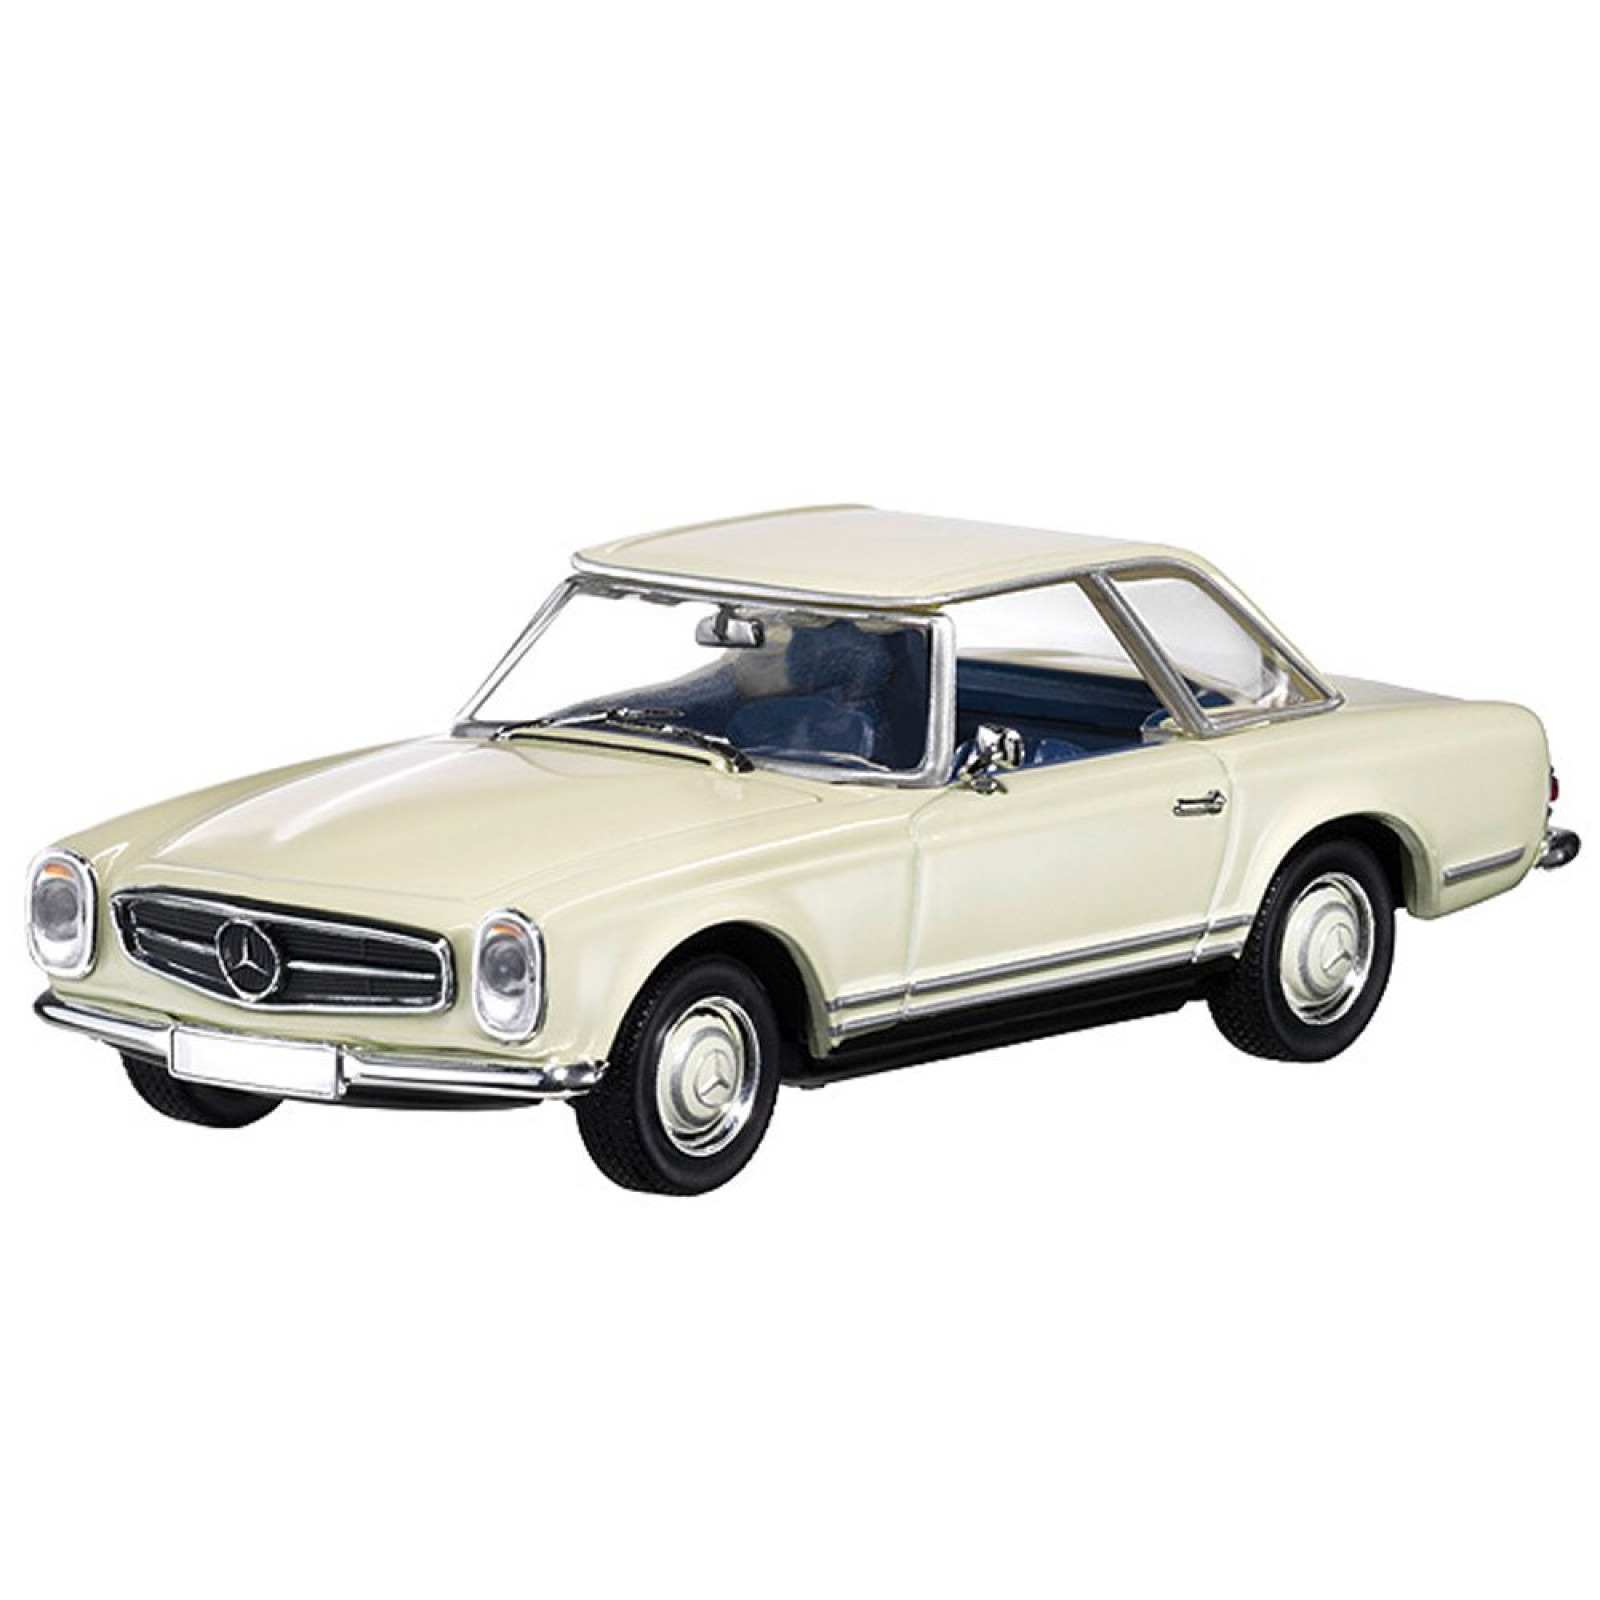 Mercedes benz w113 pagoda 230sl 1 43 scale diecast model for Mercedes benz w113